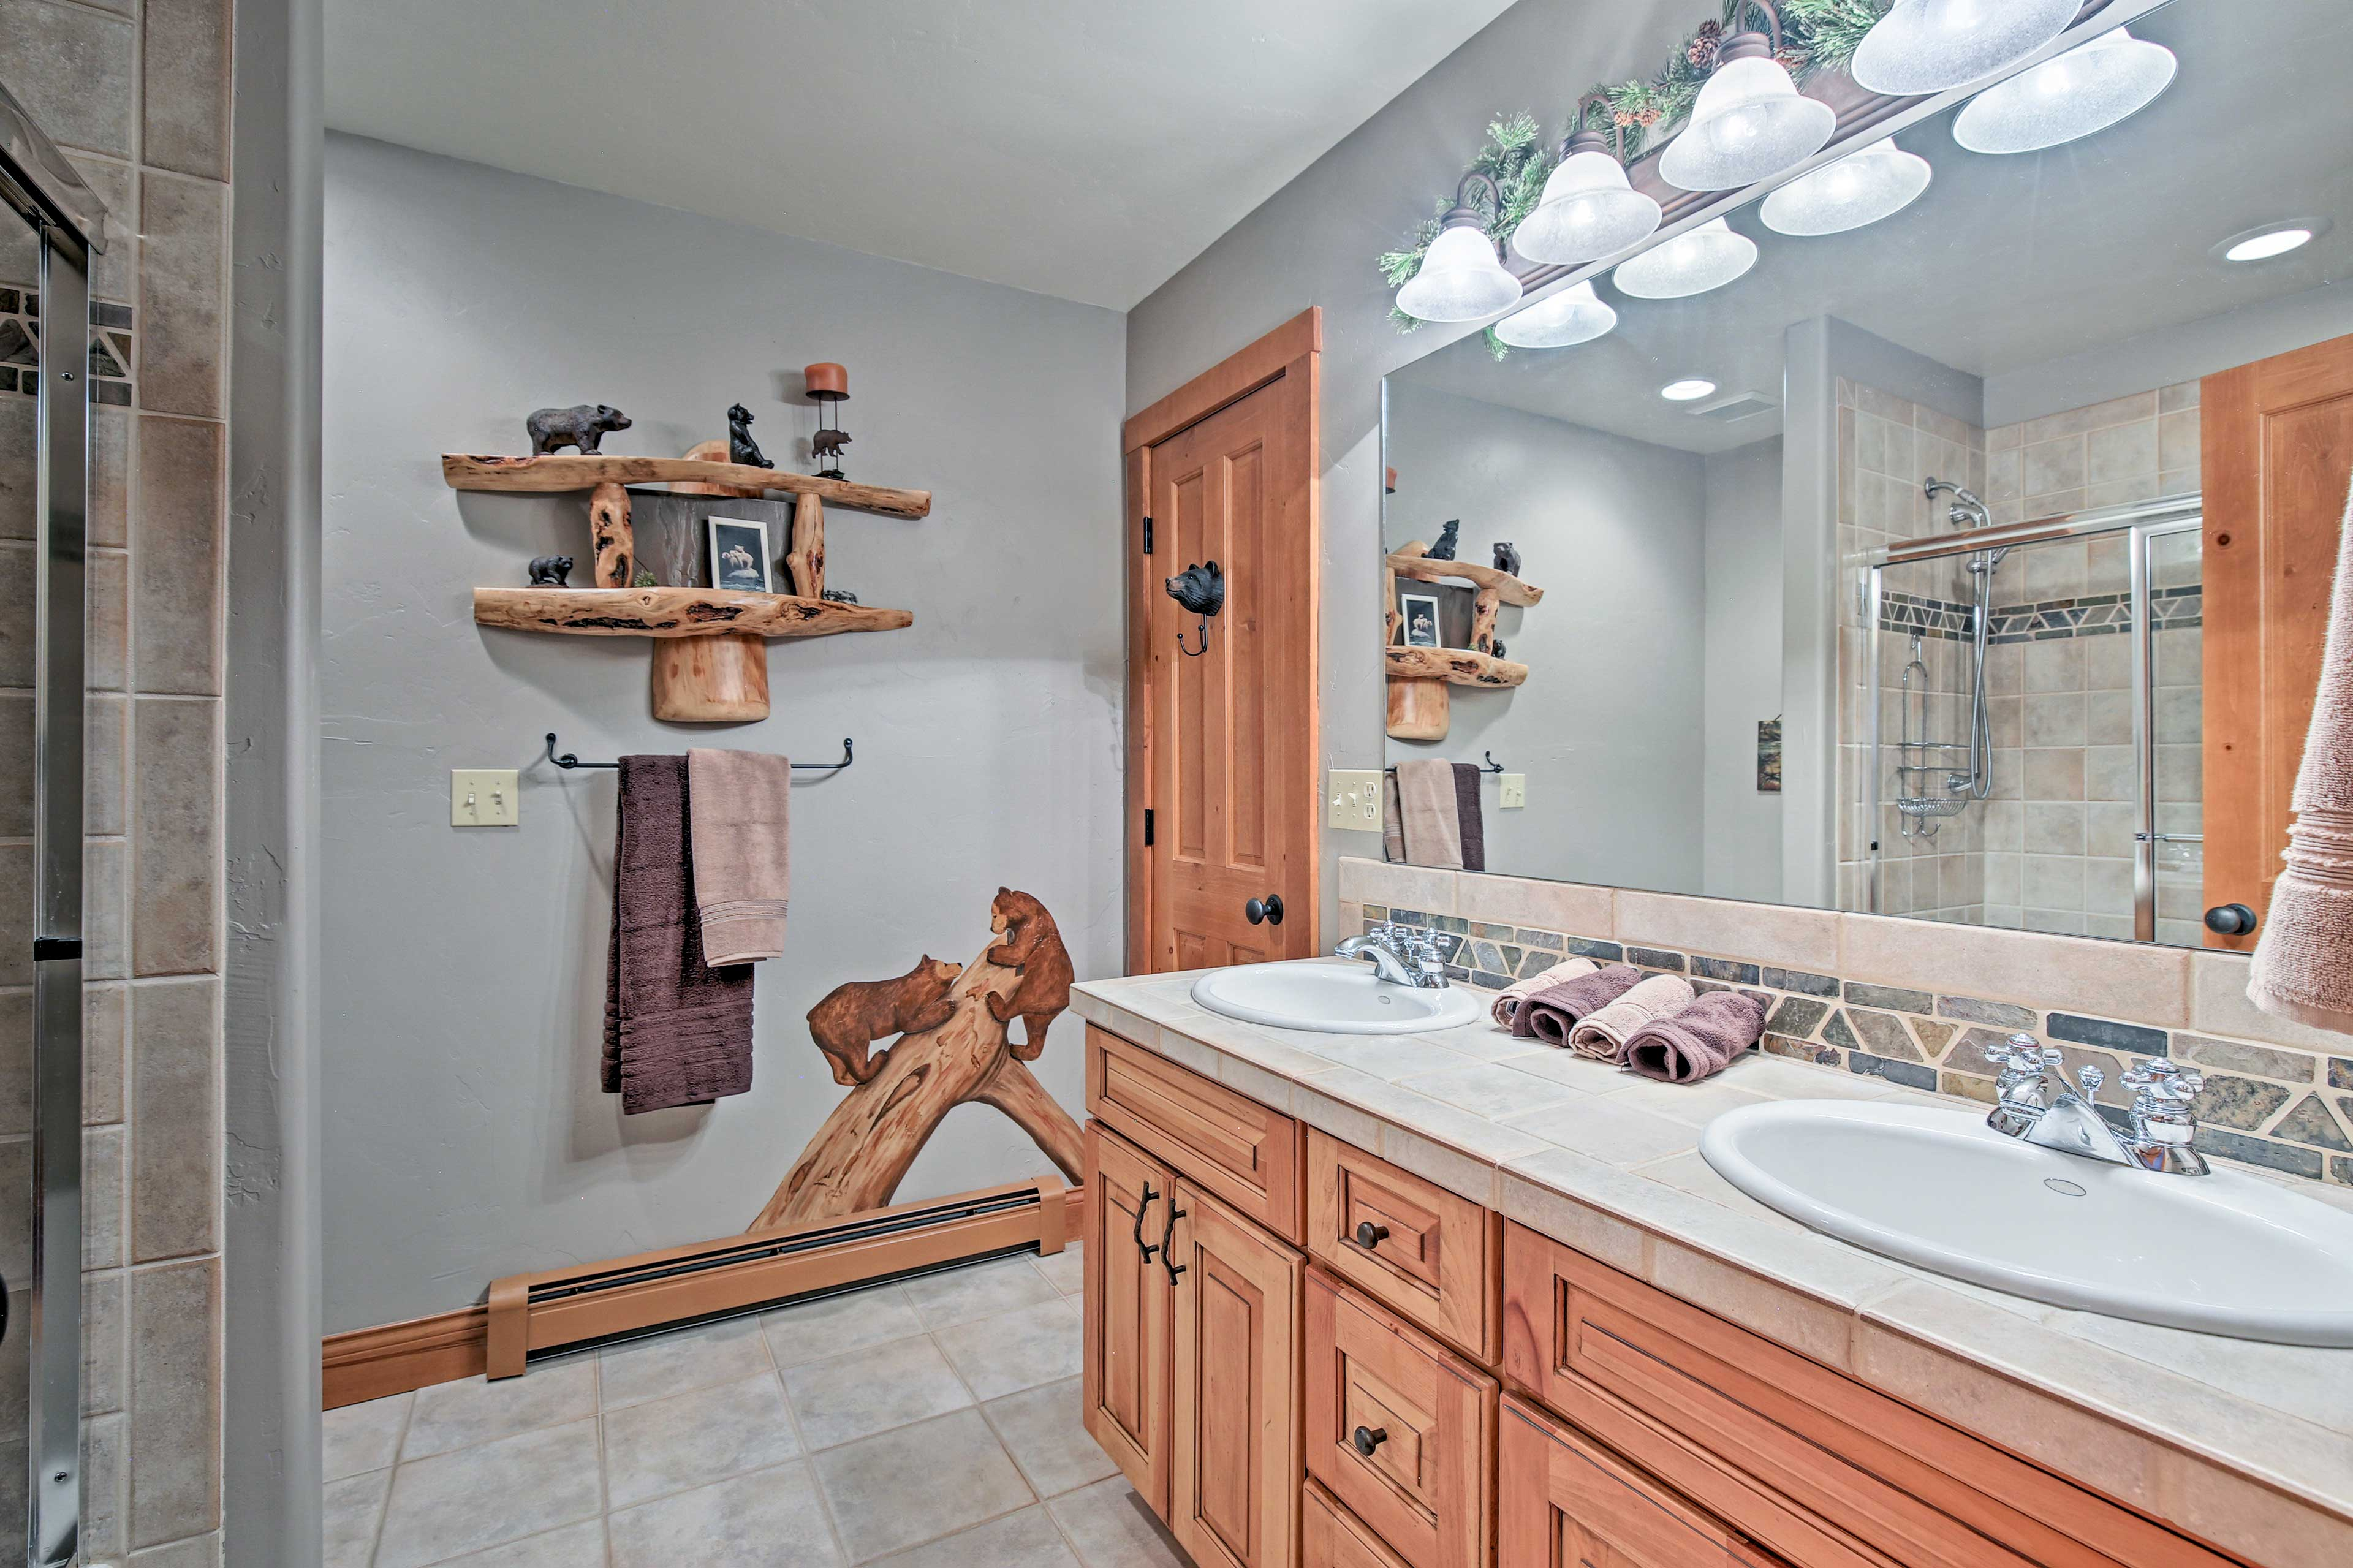 Wash up after dinner in this full bath.